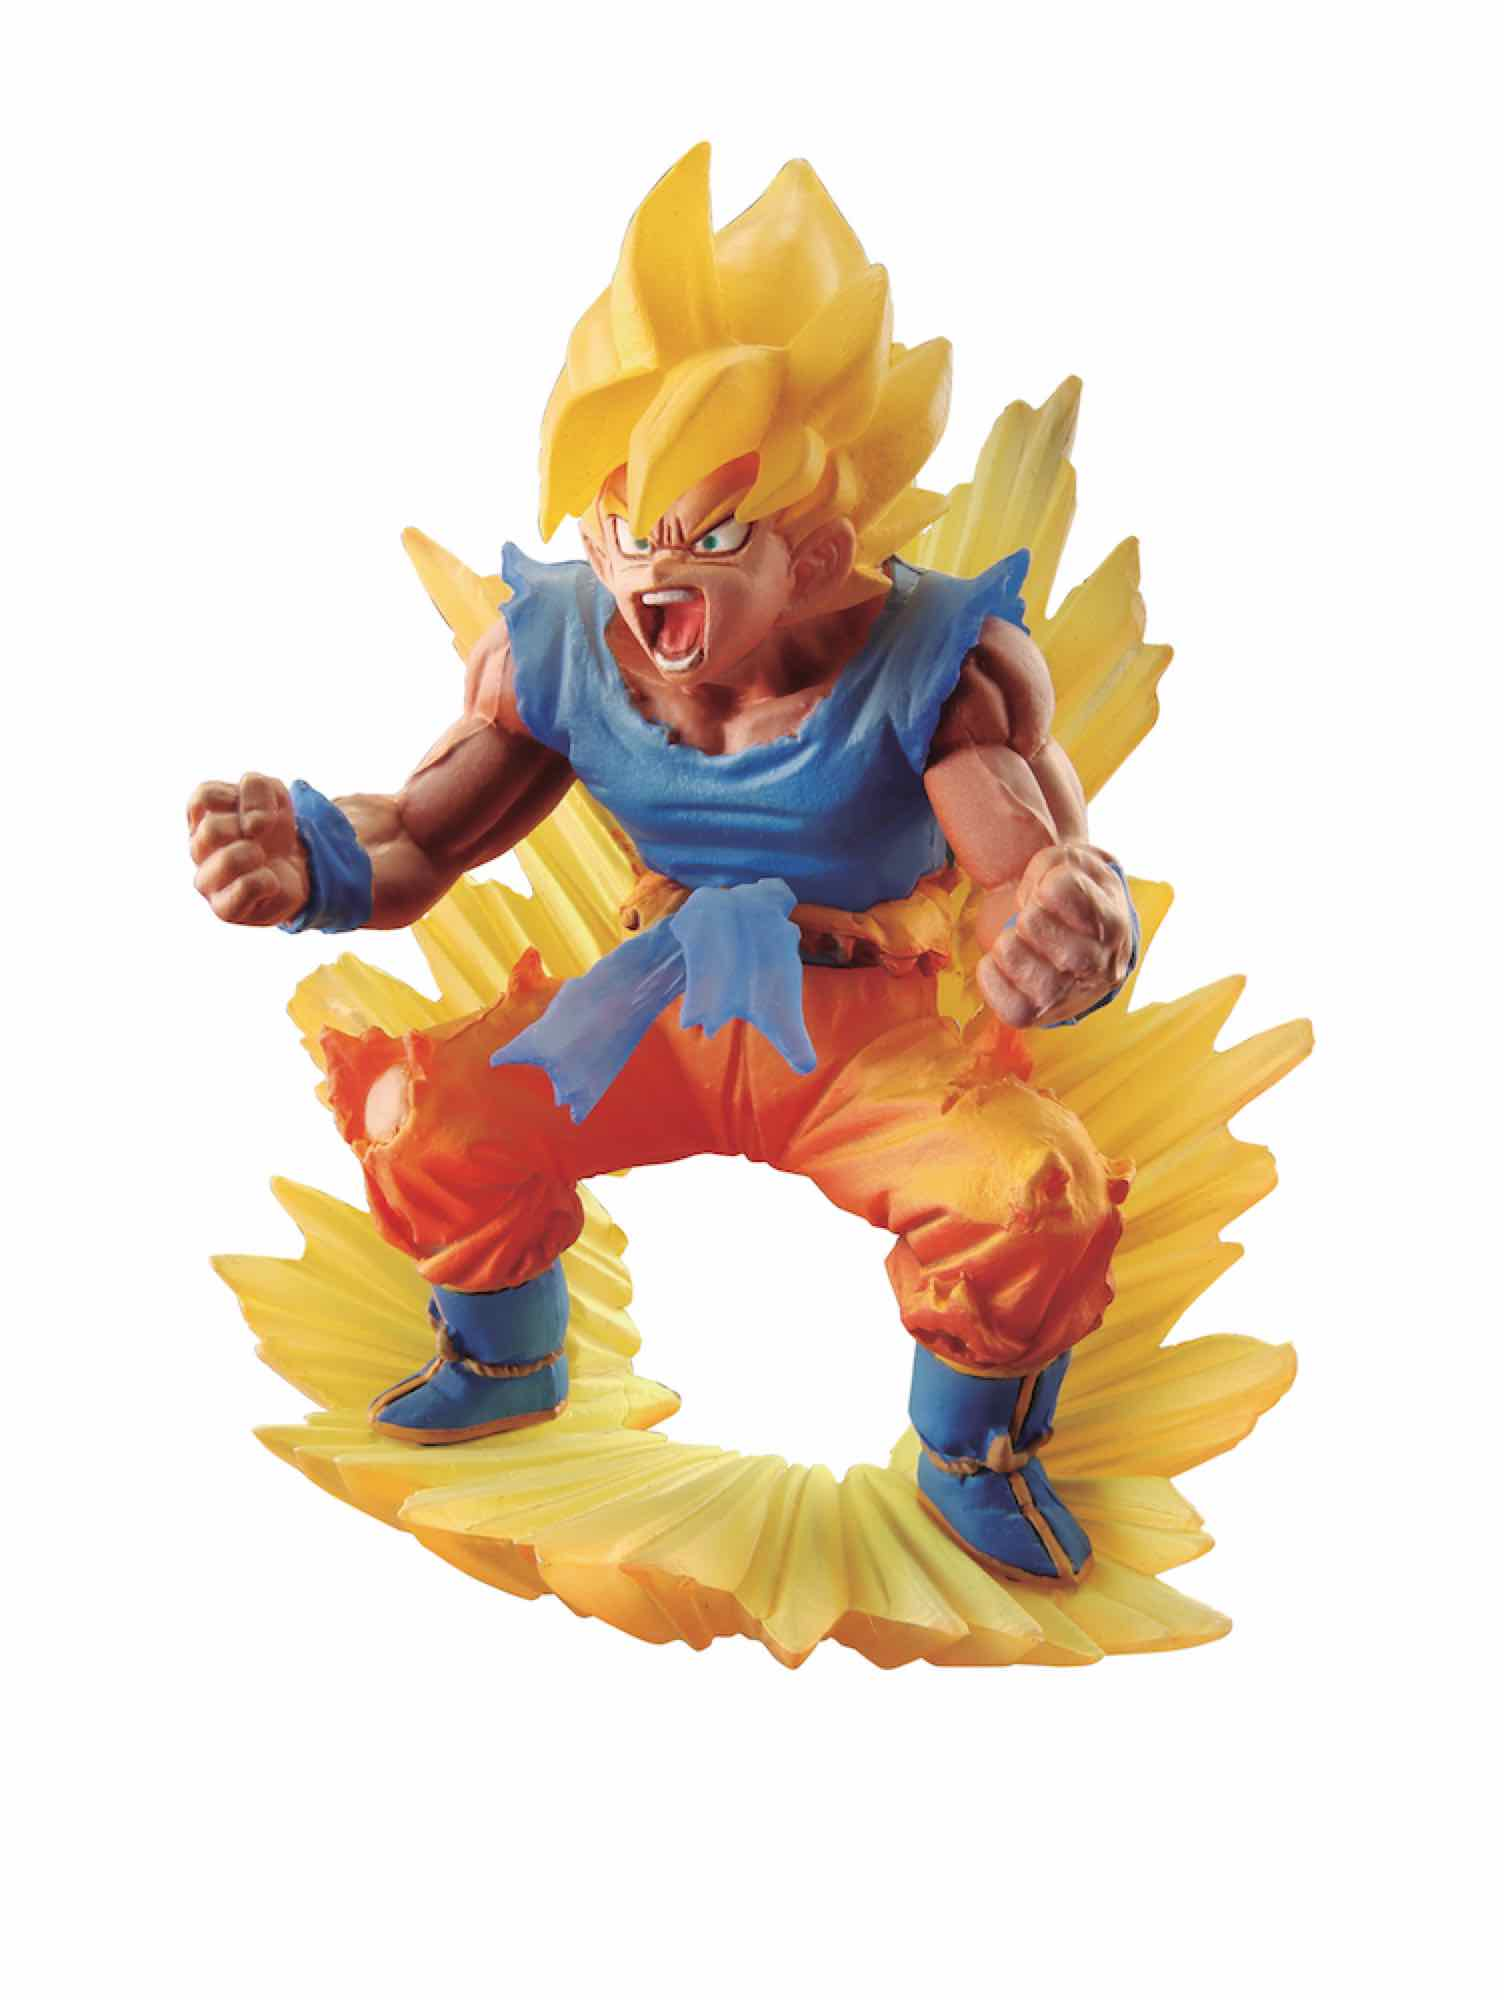 SUPER SAIYAN SON GOKU 02 FIGURA 10 CM DRAGON BALL Z SERIE DRACAP MEMORIAL